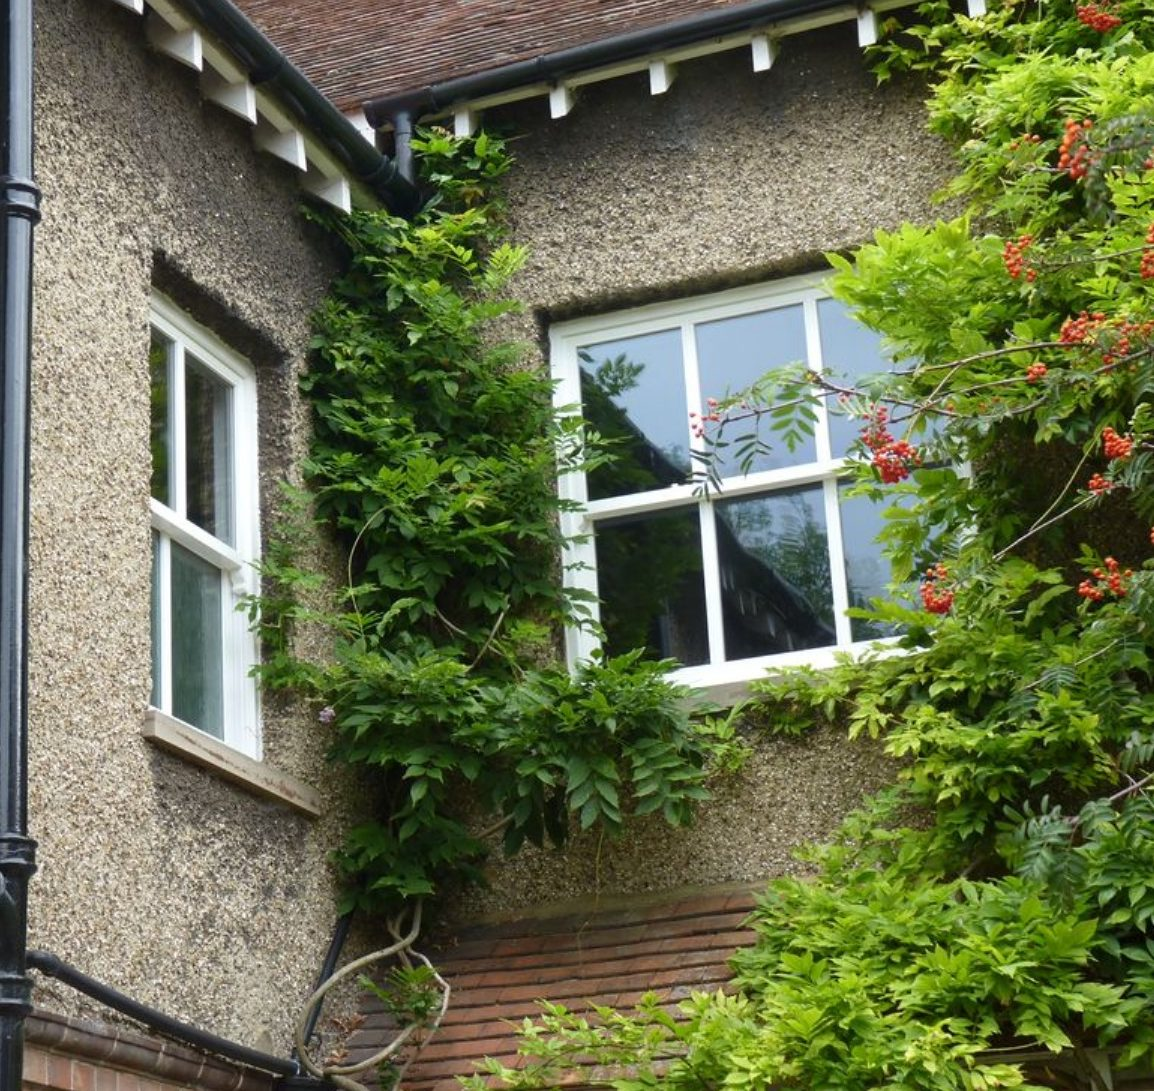 Cheap window options, custom fit and range of sizes